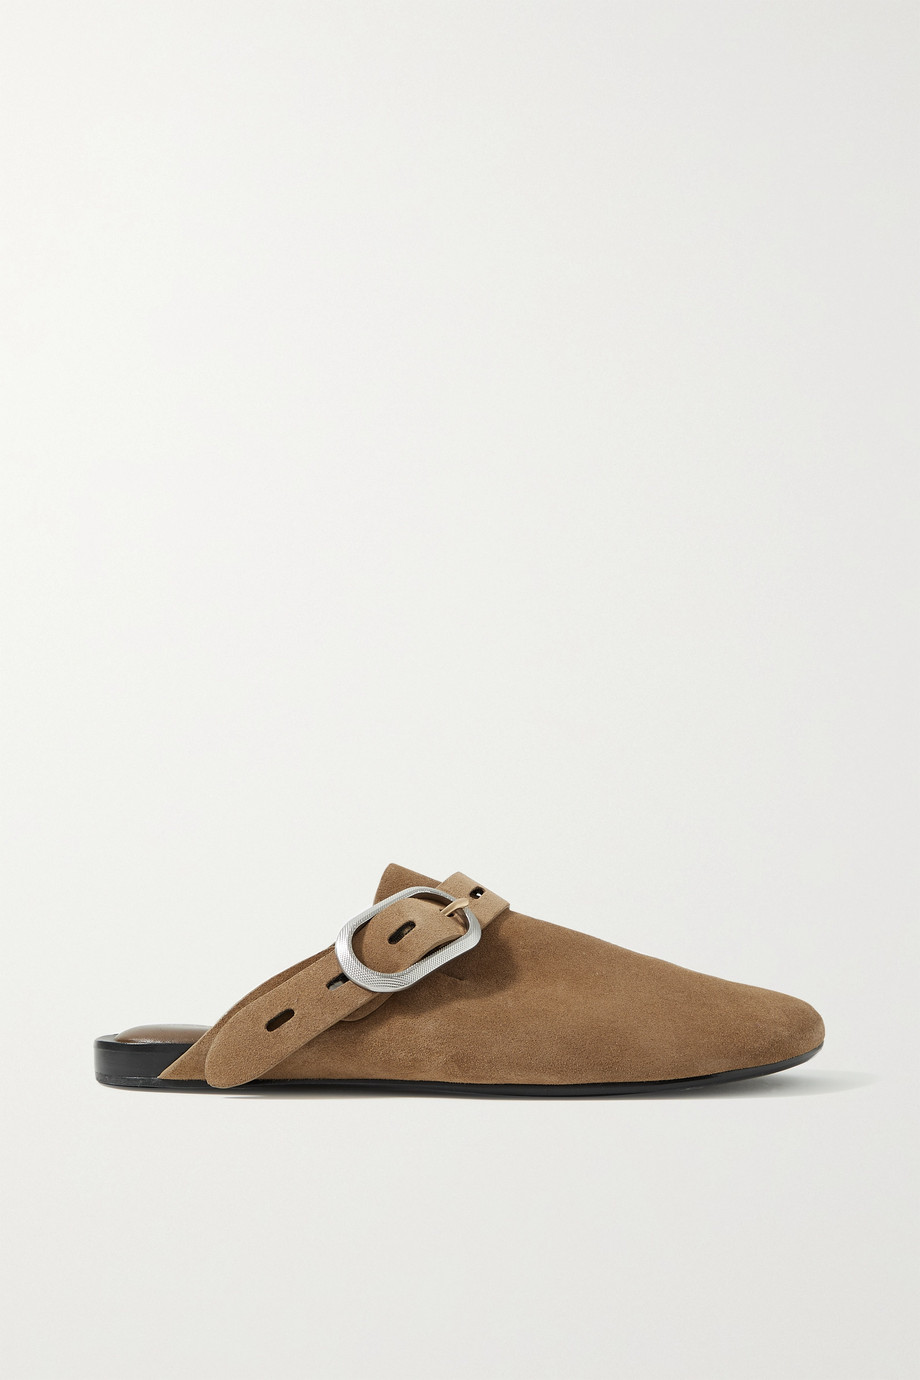 RAG & BONE Ansley buckled suede slippers